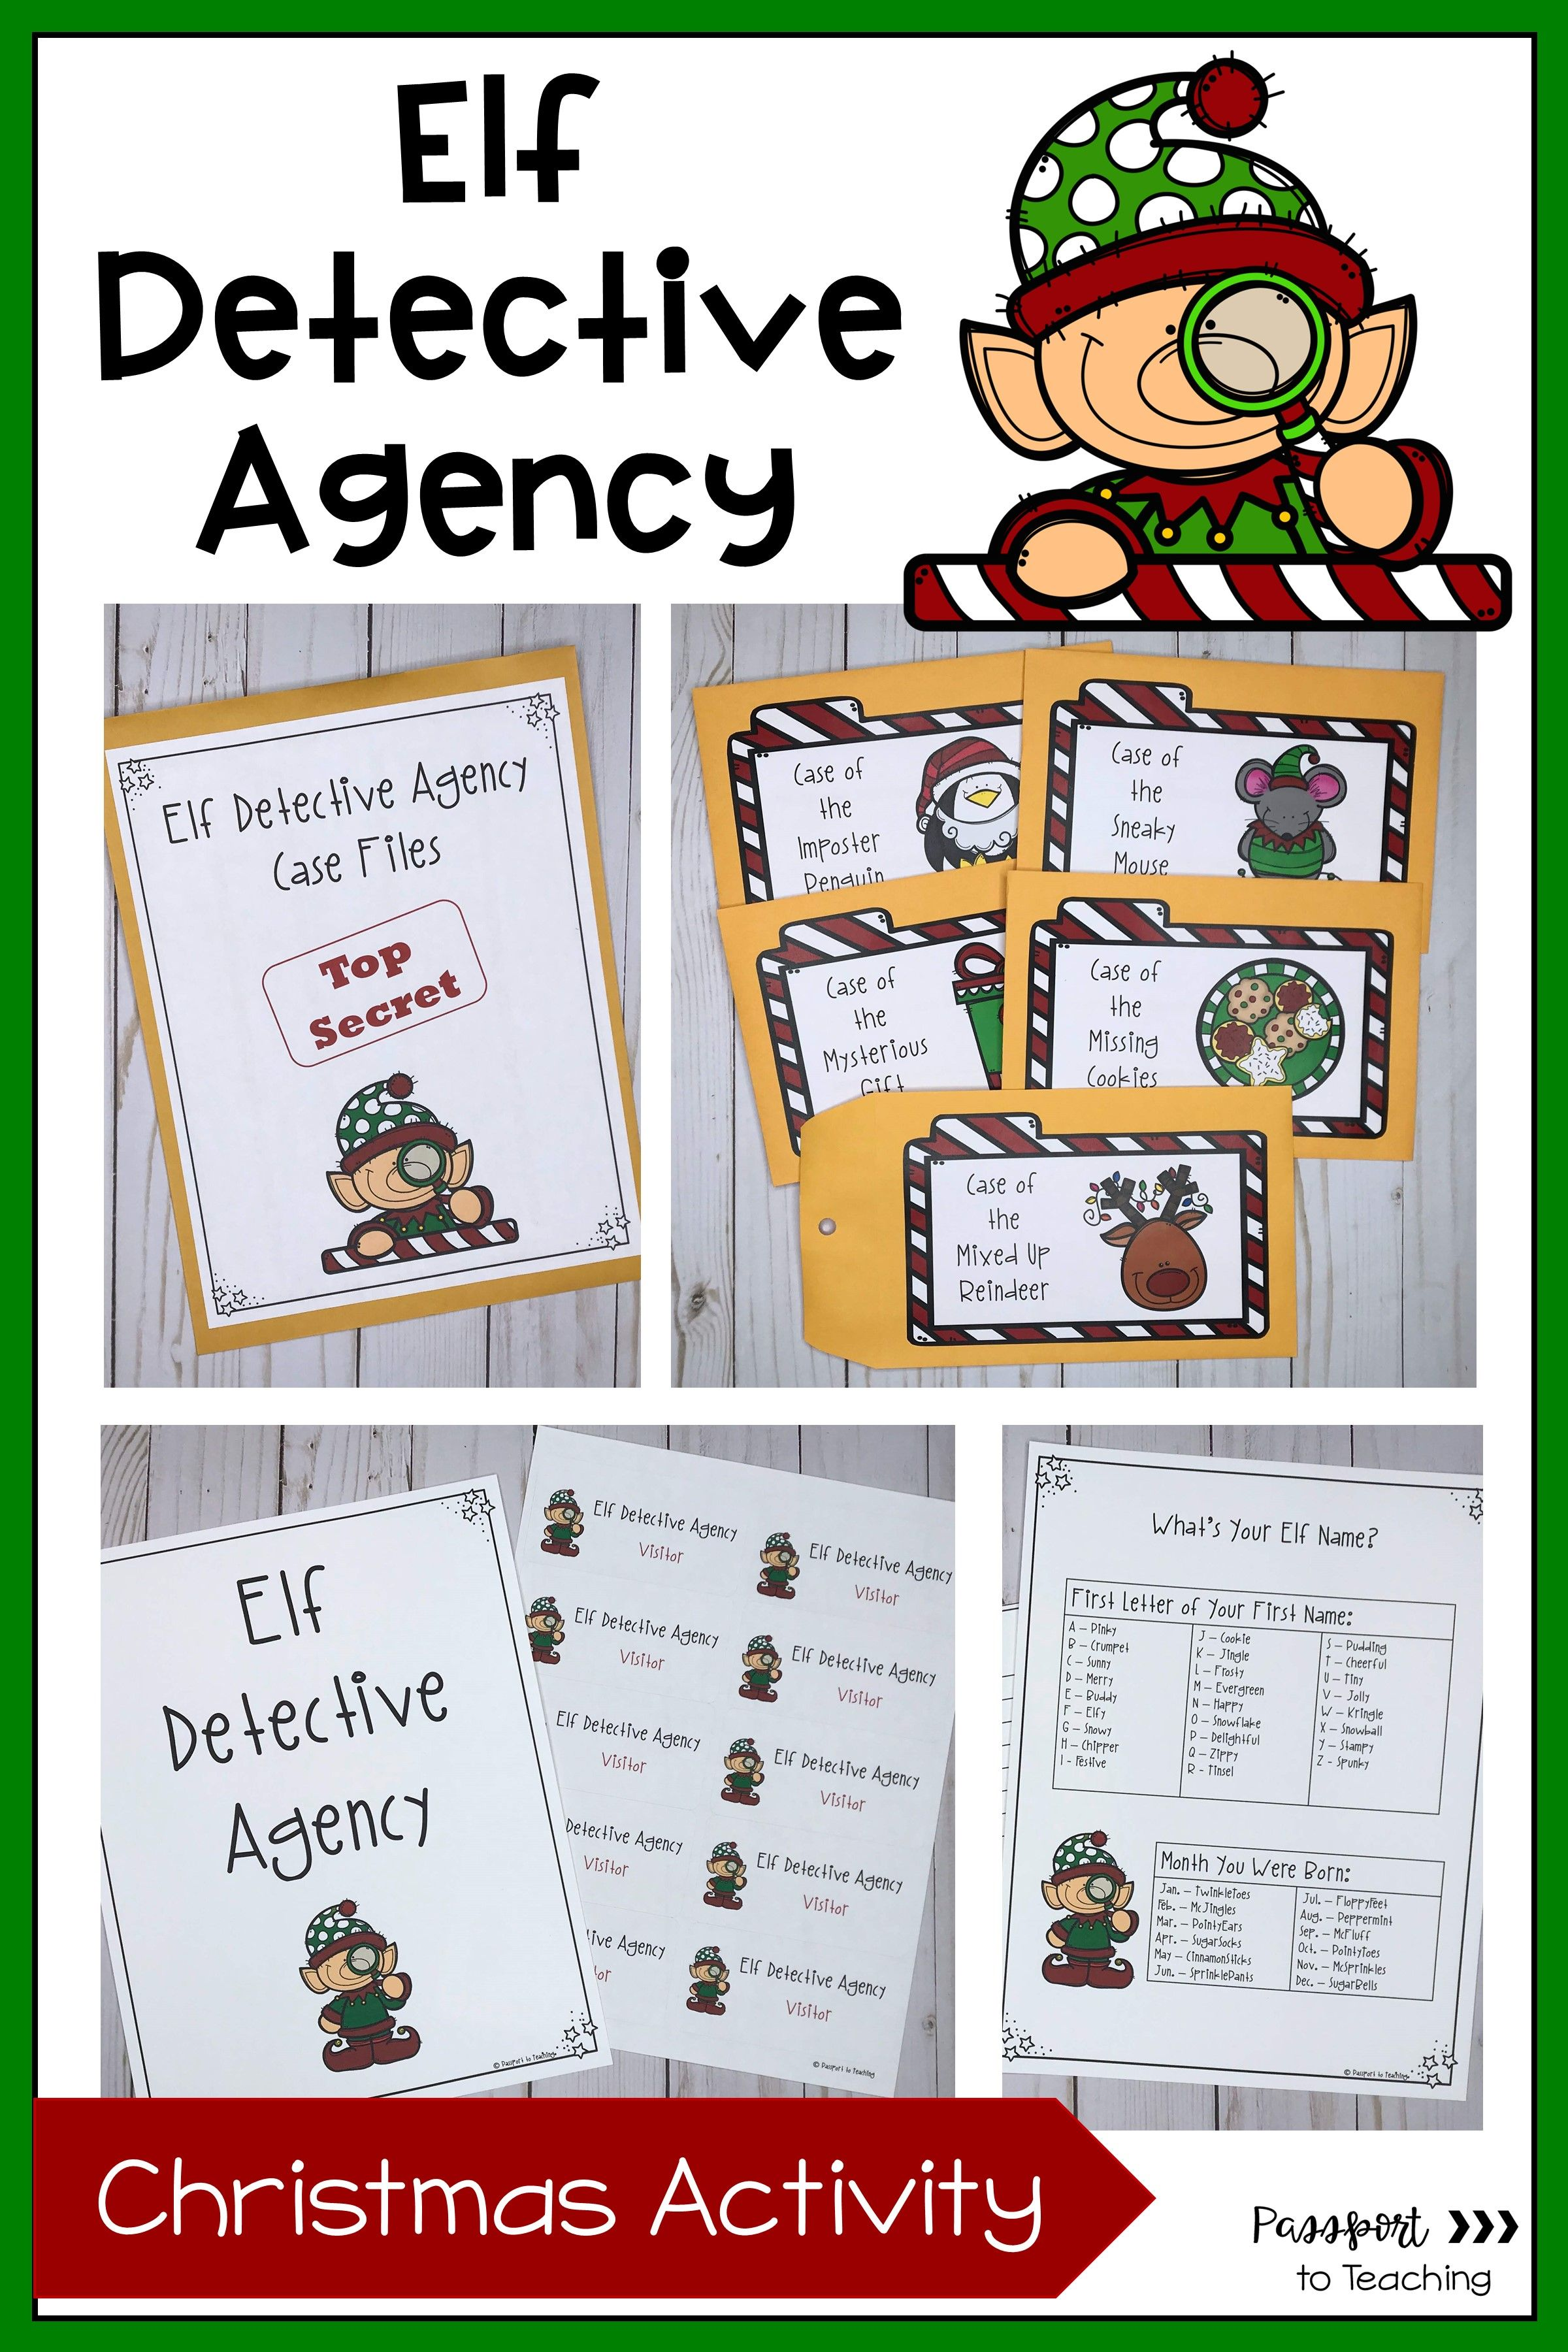 Elf Detective Agency Christmas Activity